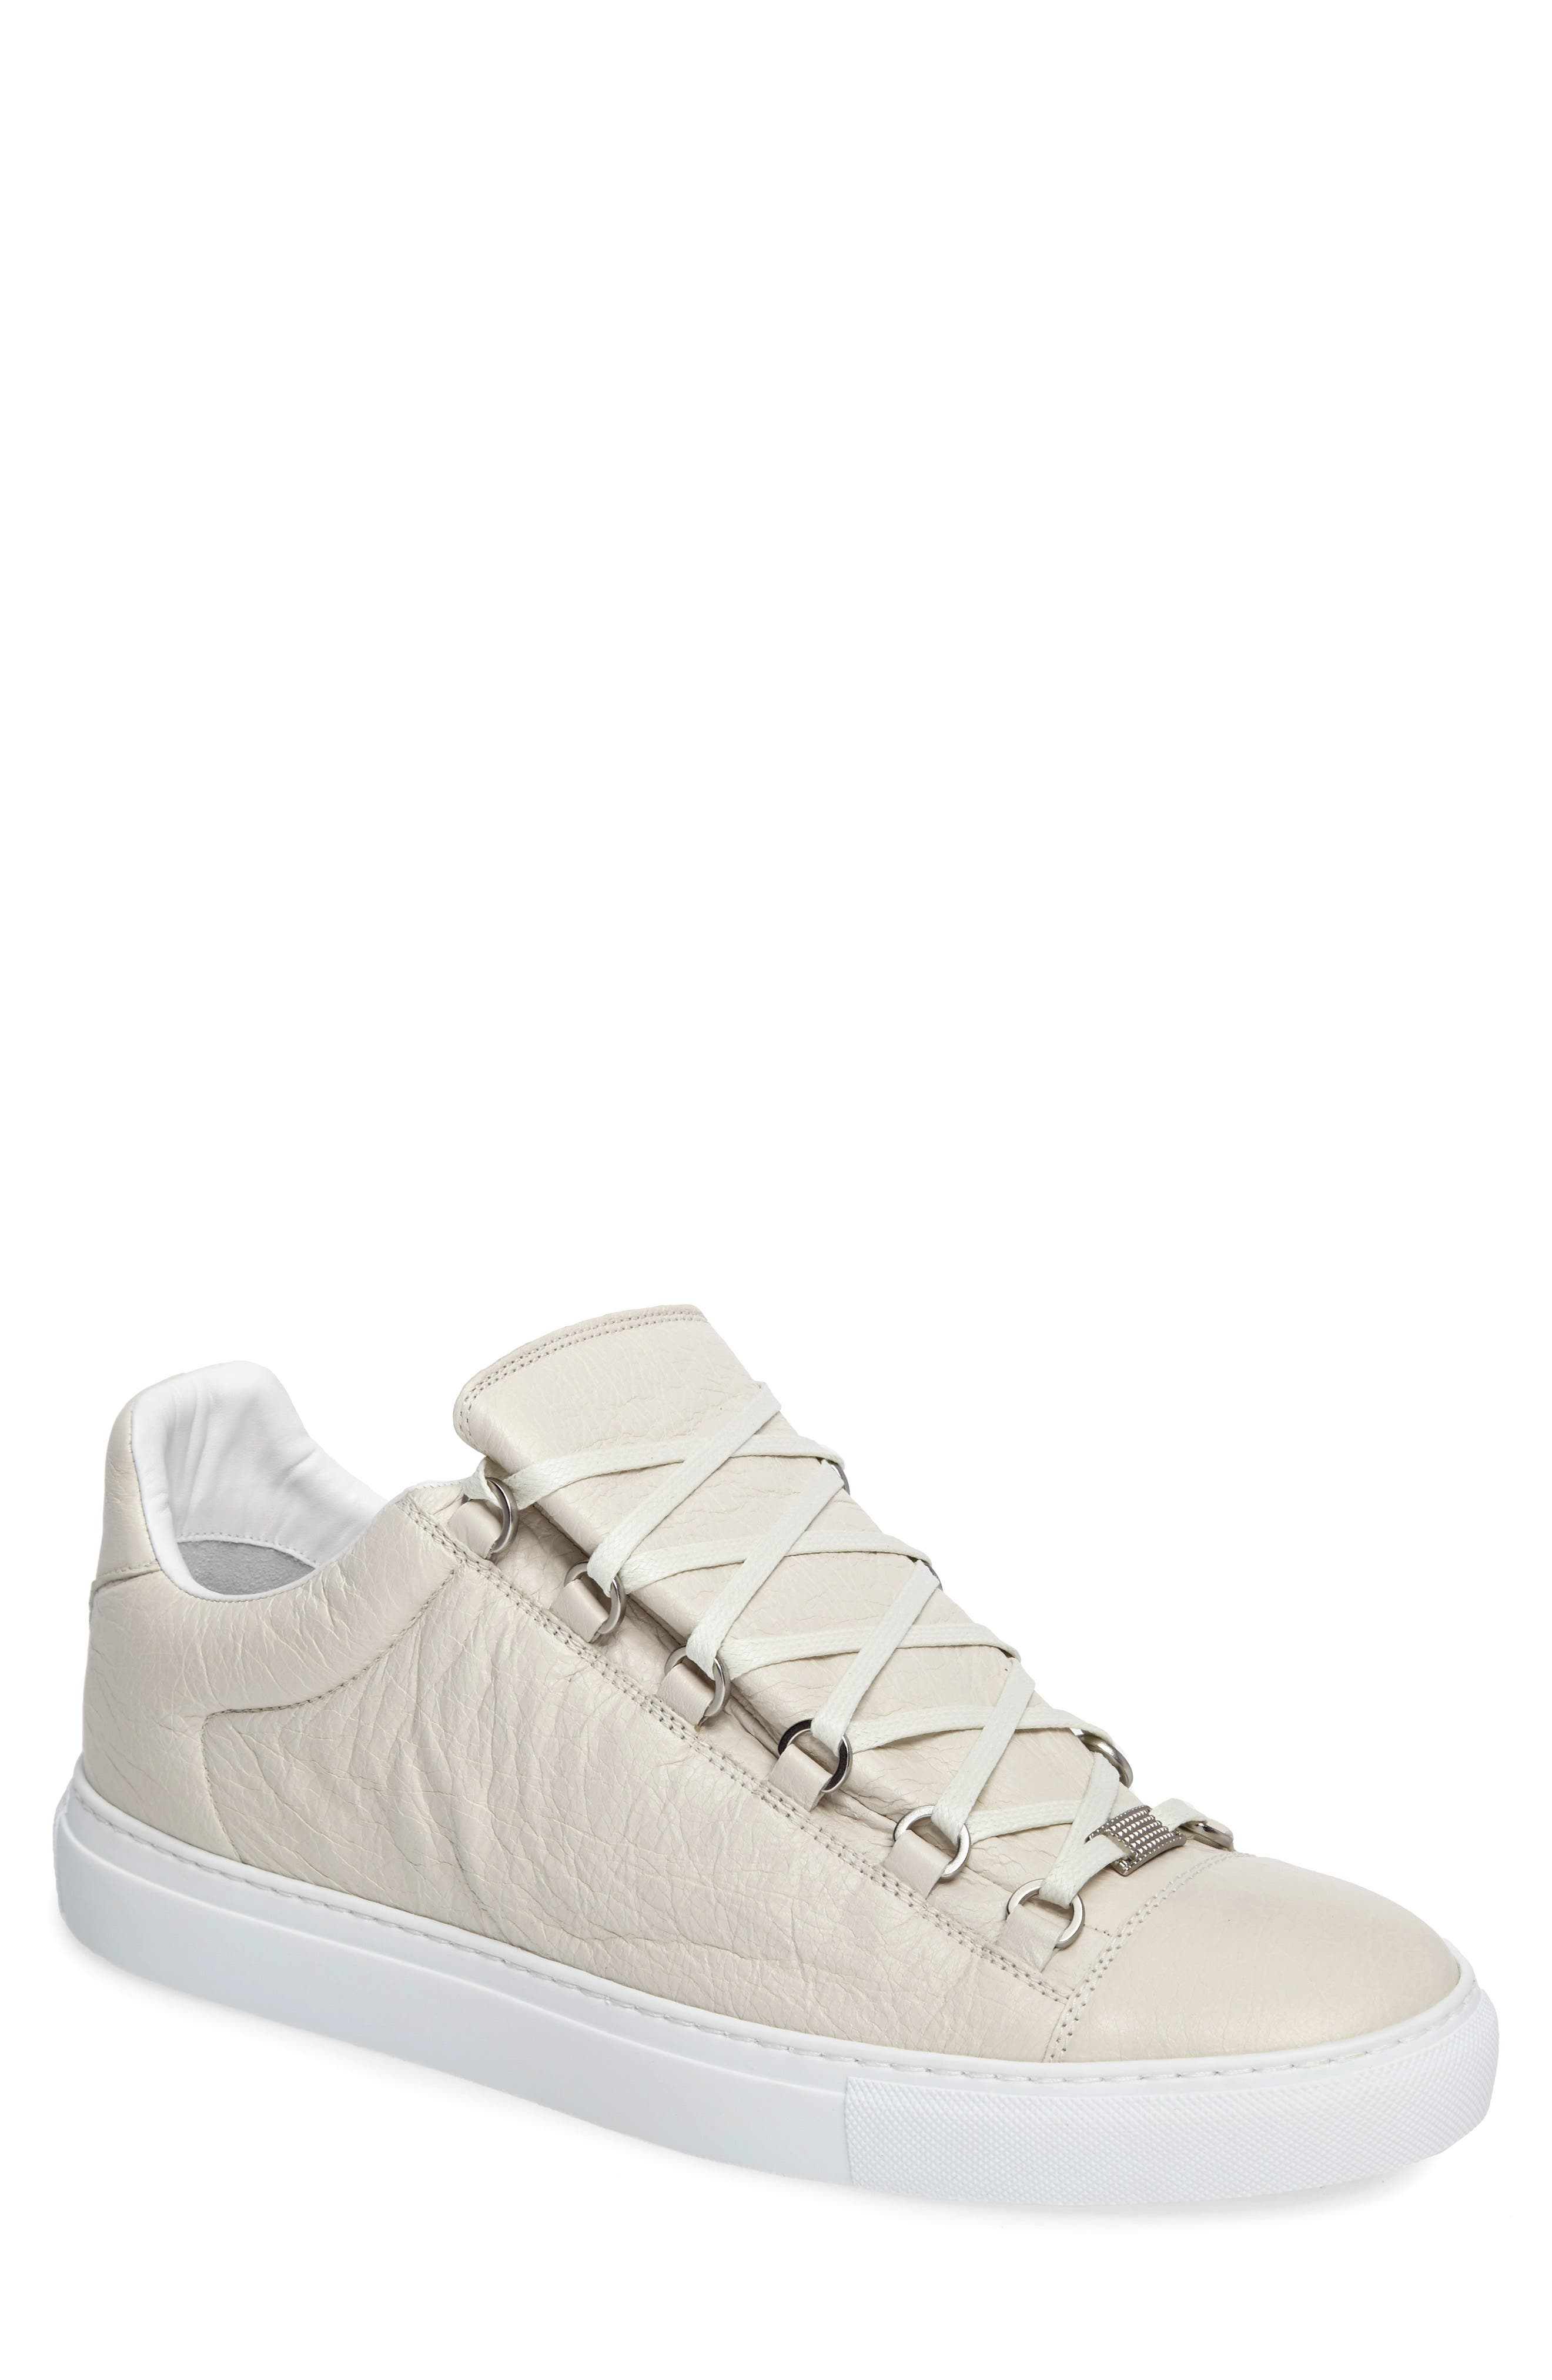 Arena Low Sneaker,                             Main thumbnail 1, color,                             Extra Blanc Leather